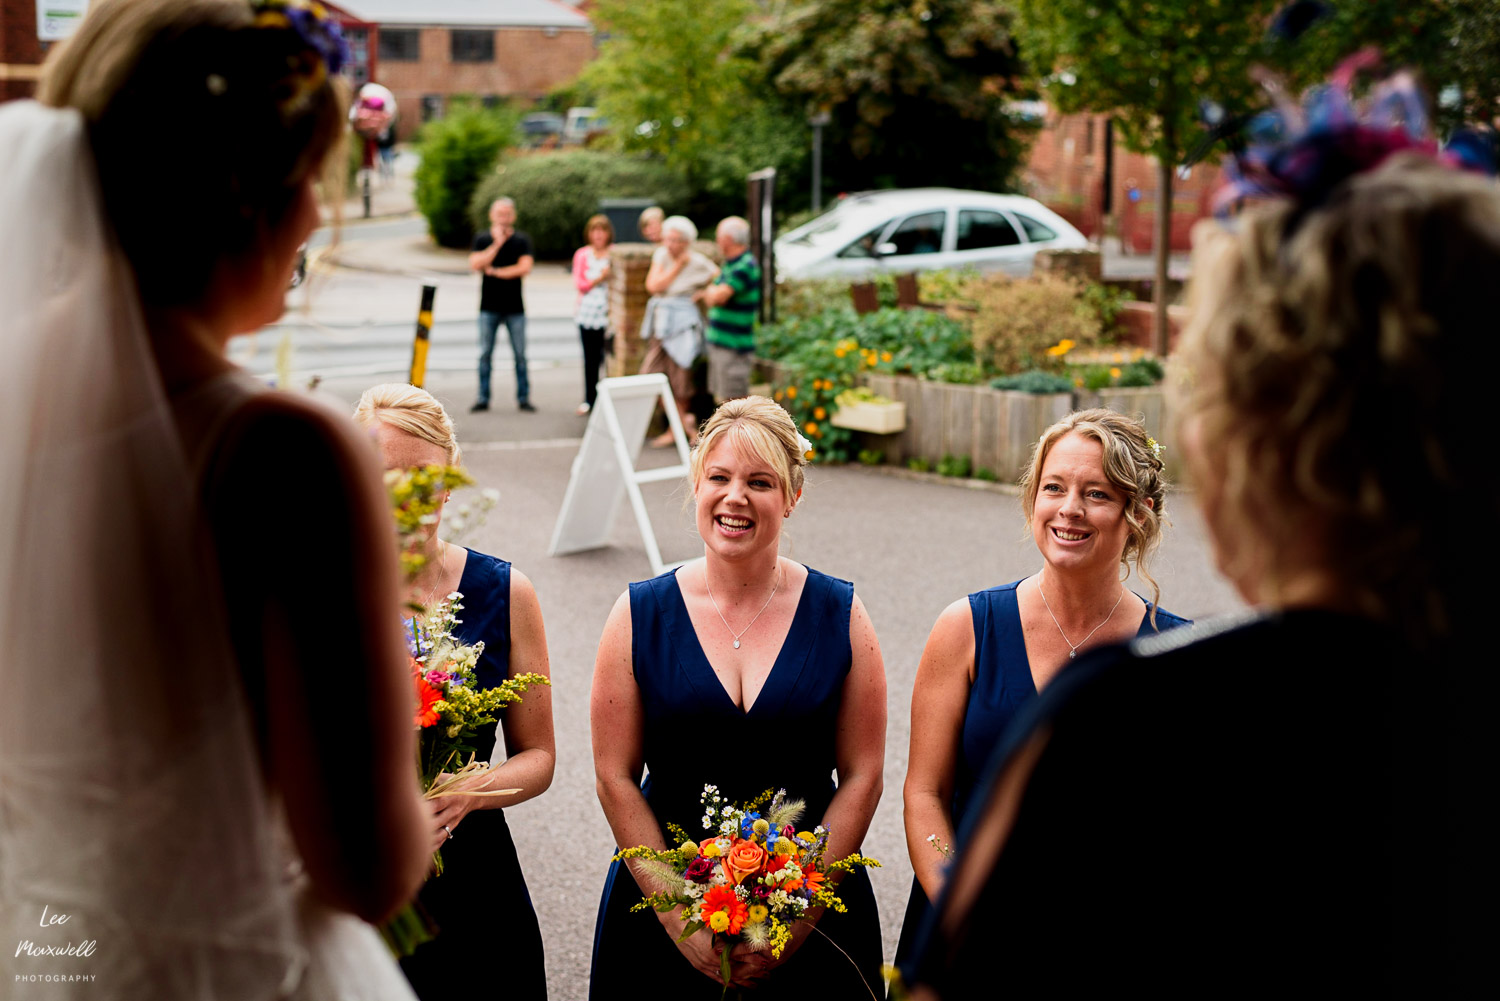 Bridesmaids arriving